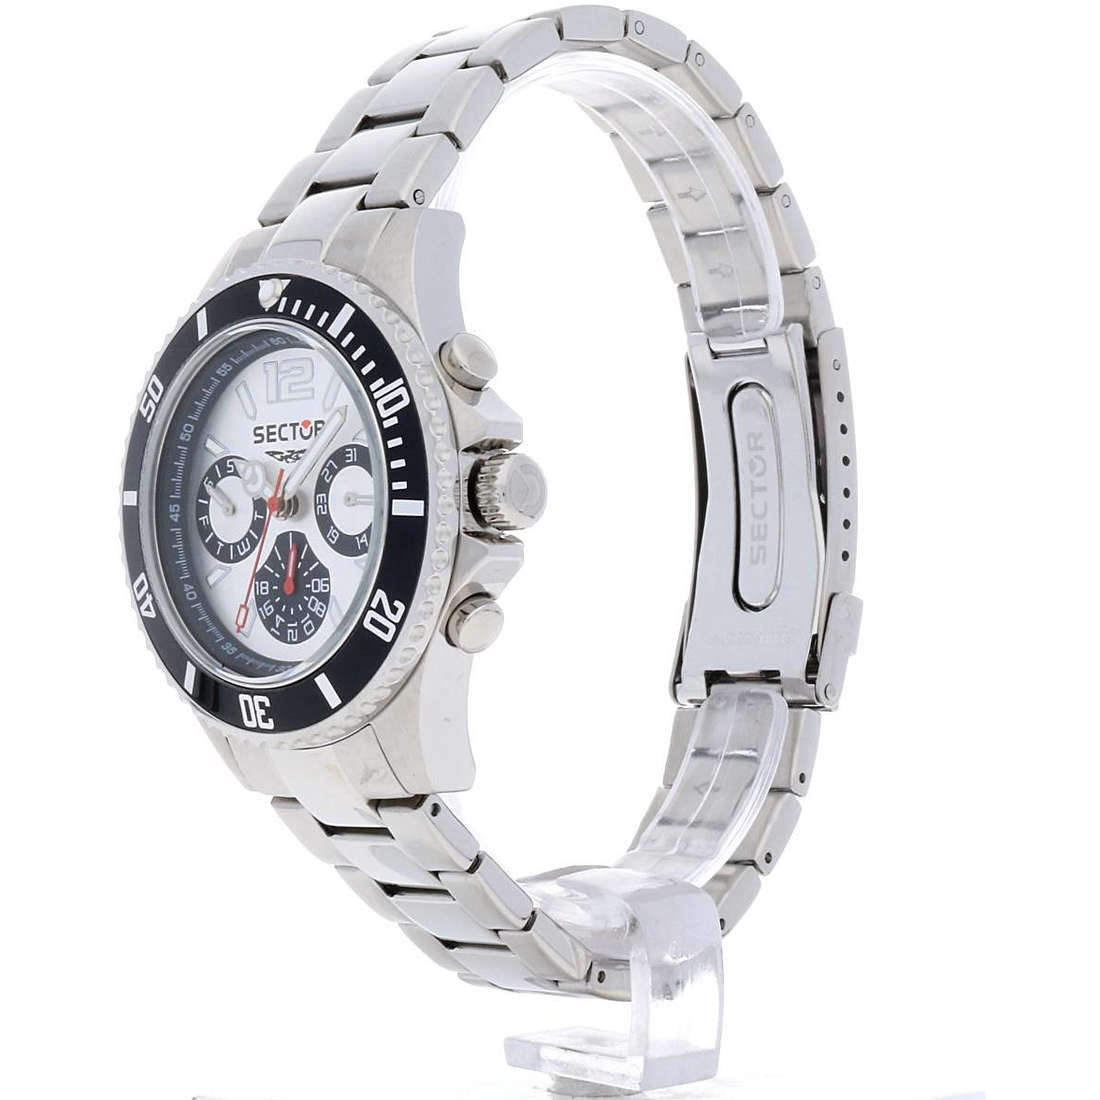 vente montres homme Sector R3253161012